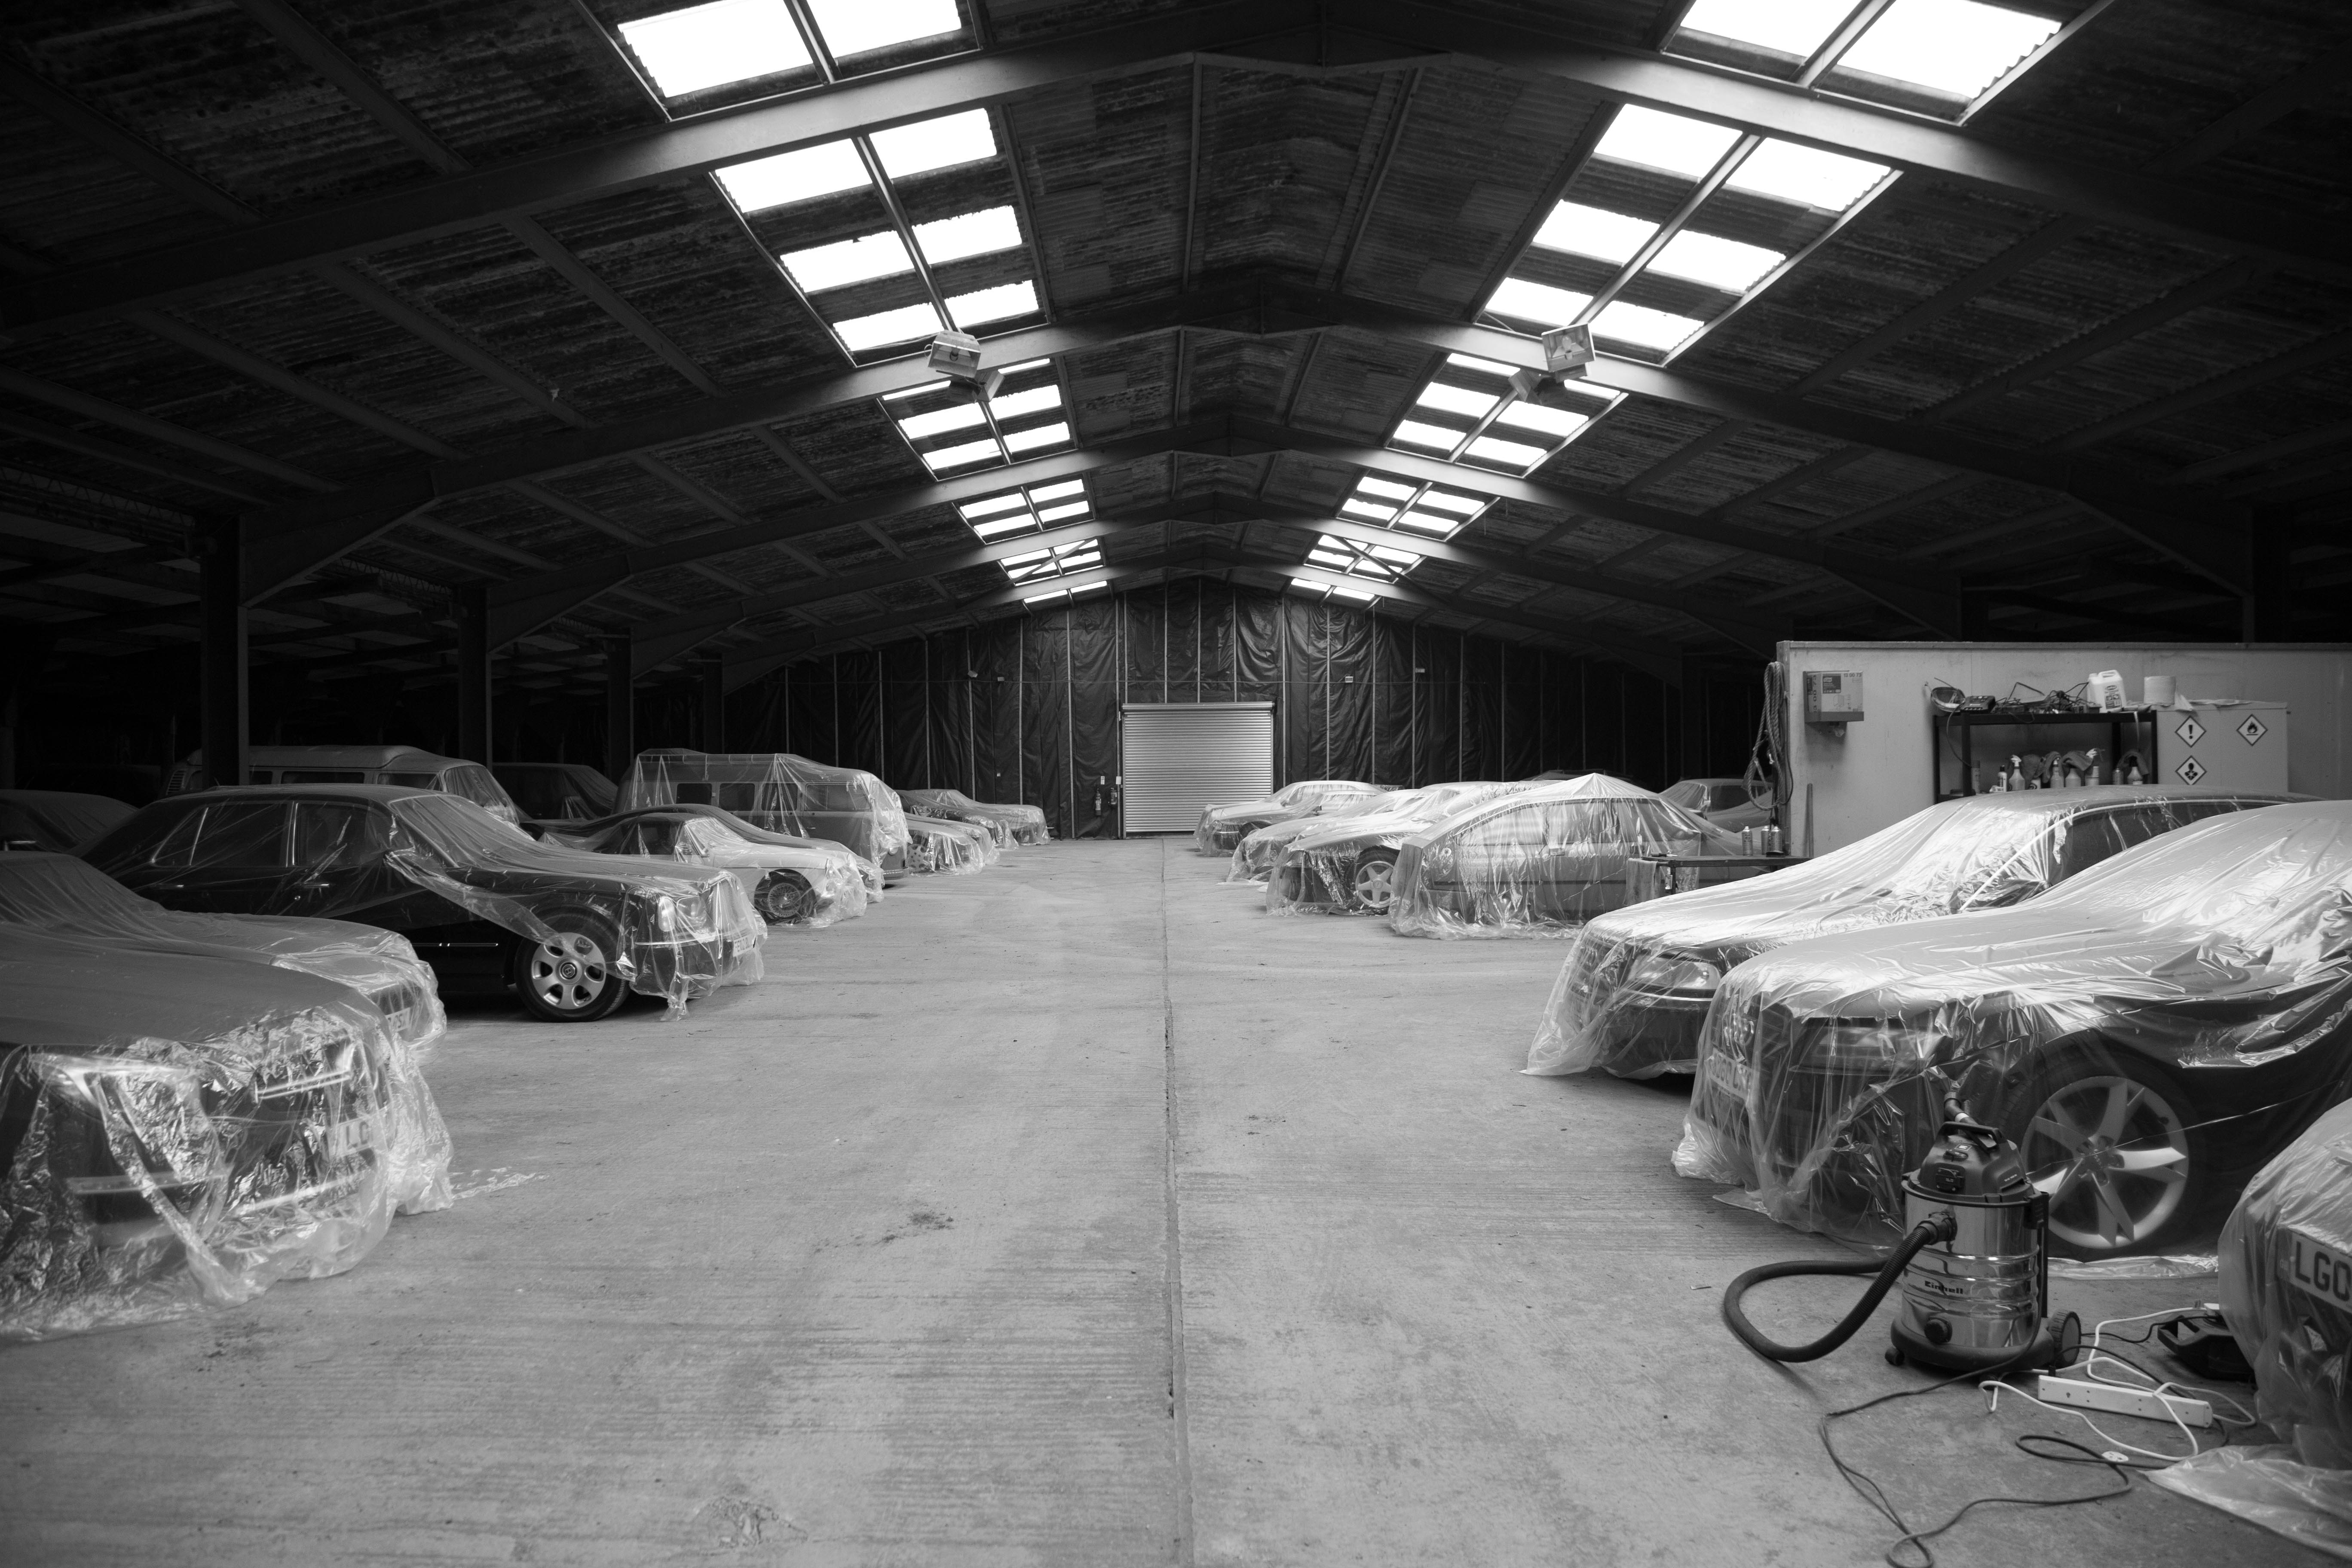 So how much is car storage?